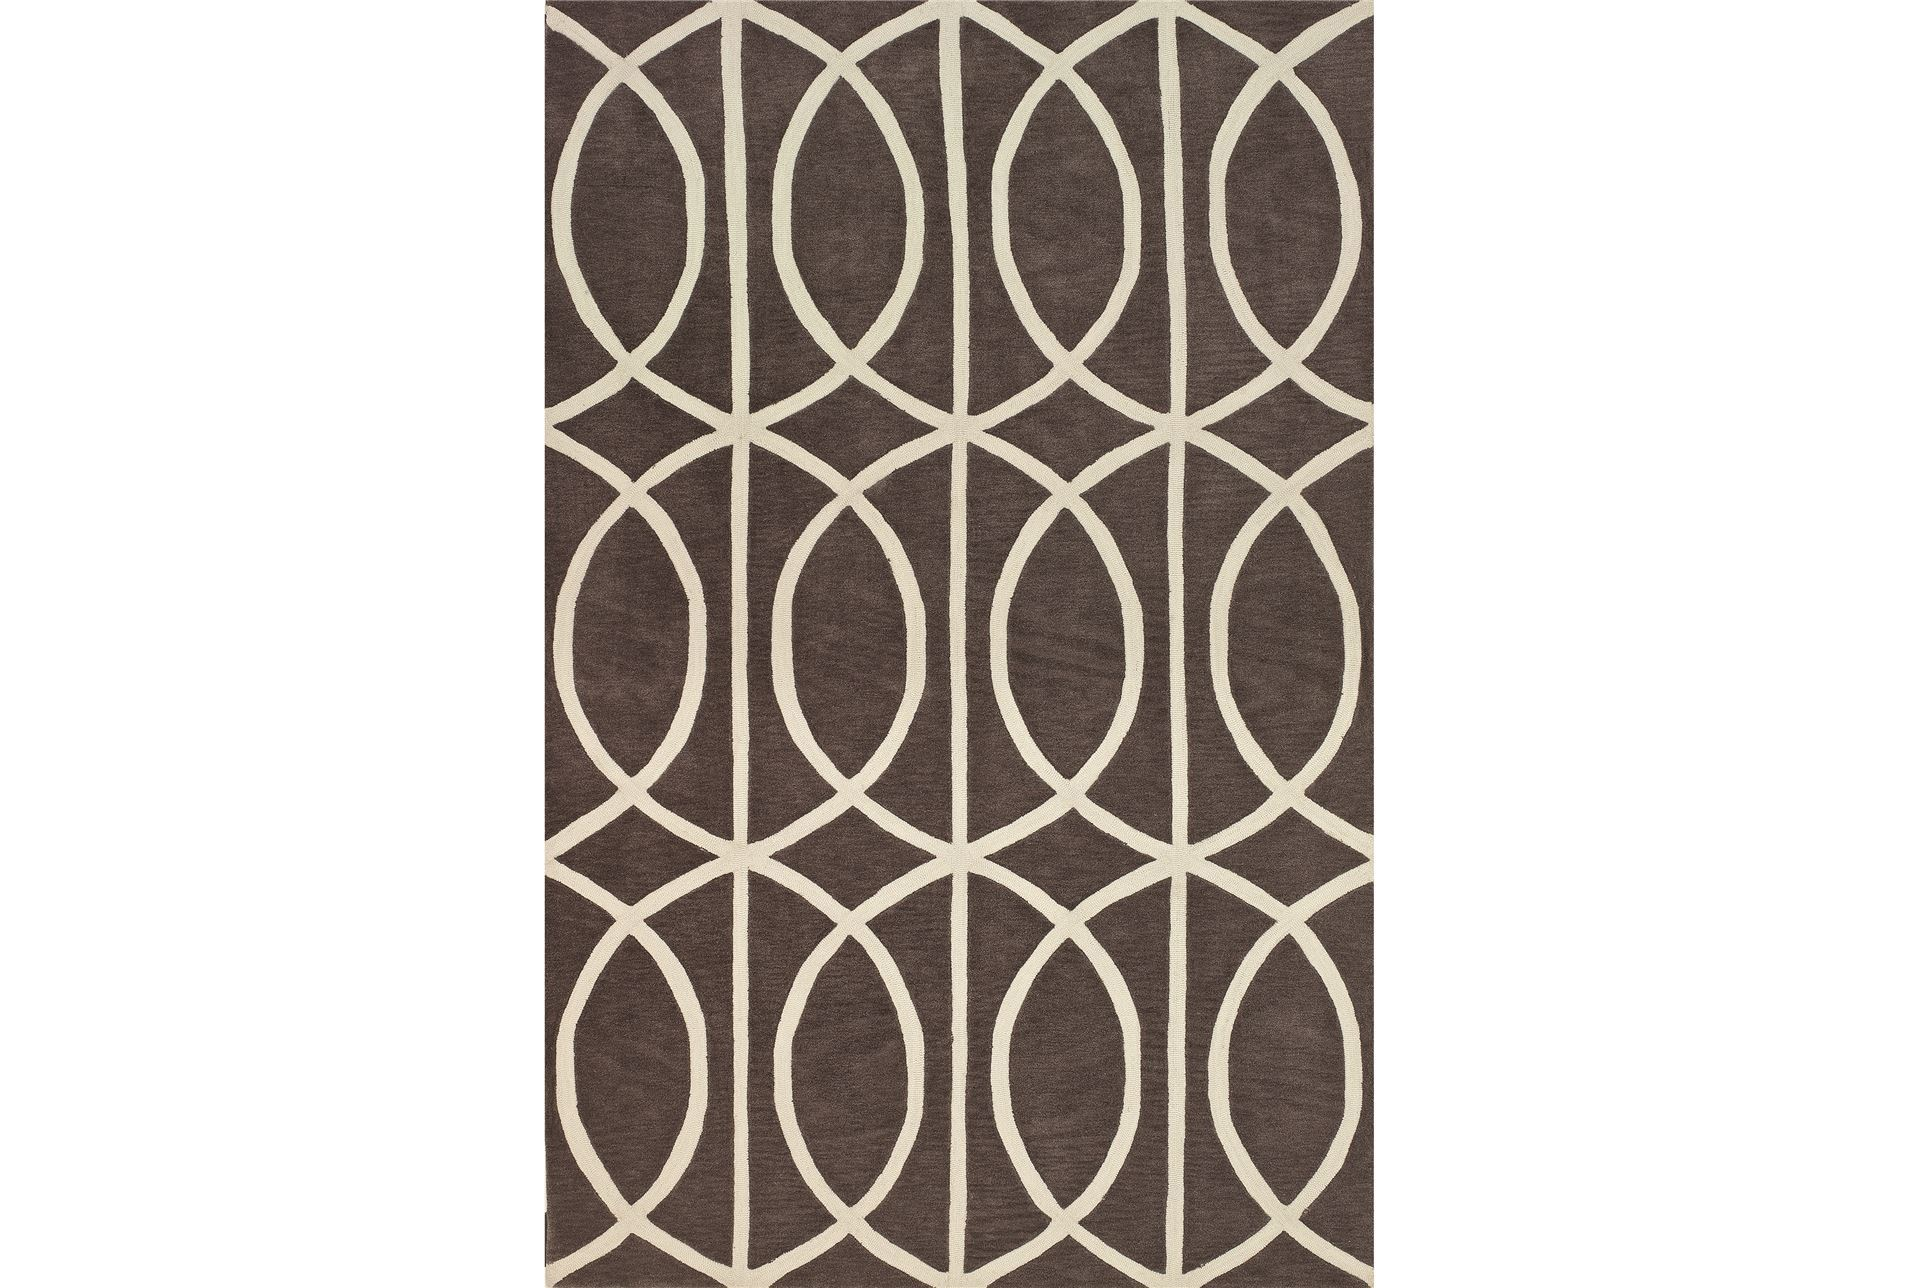 96x120 rug infinity grey living spaces